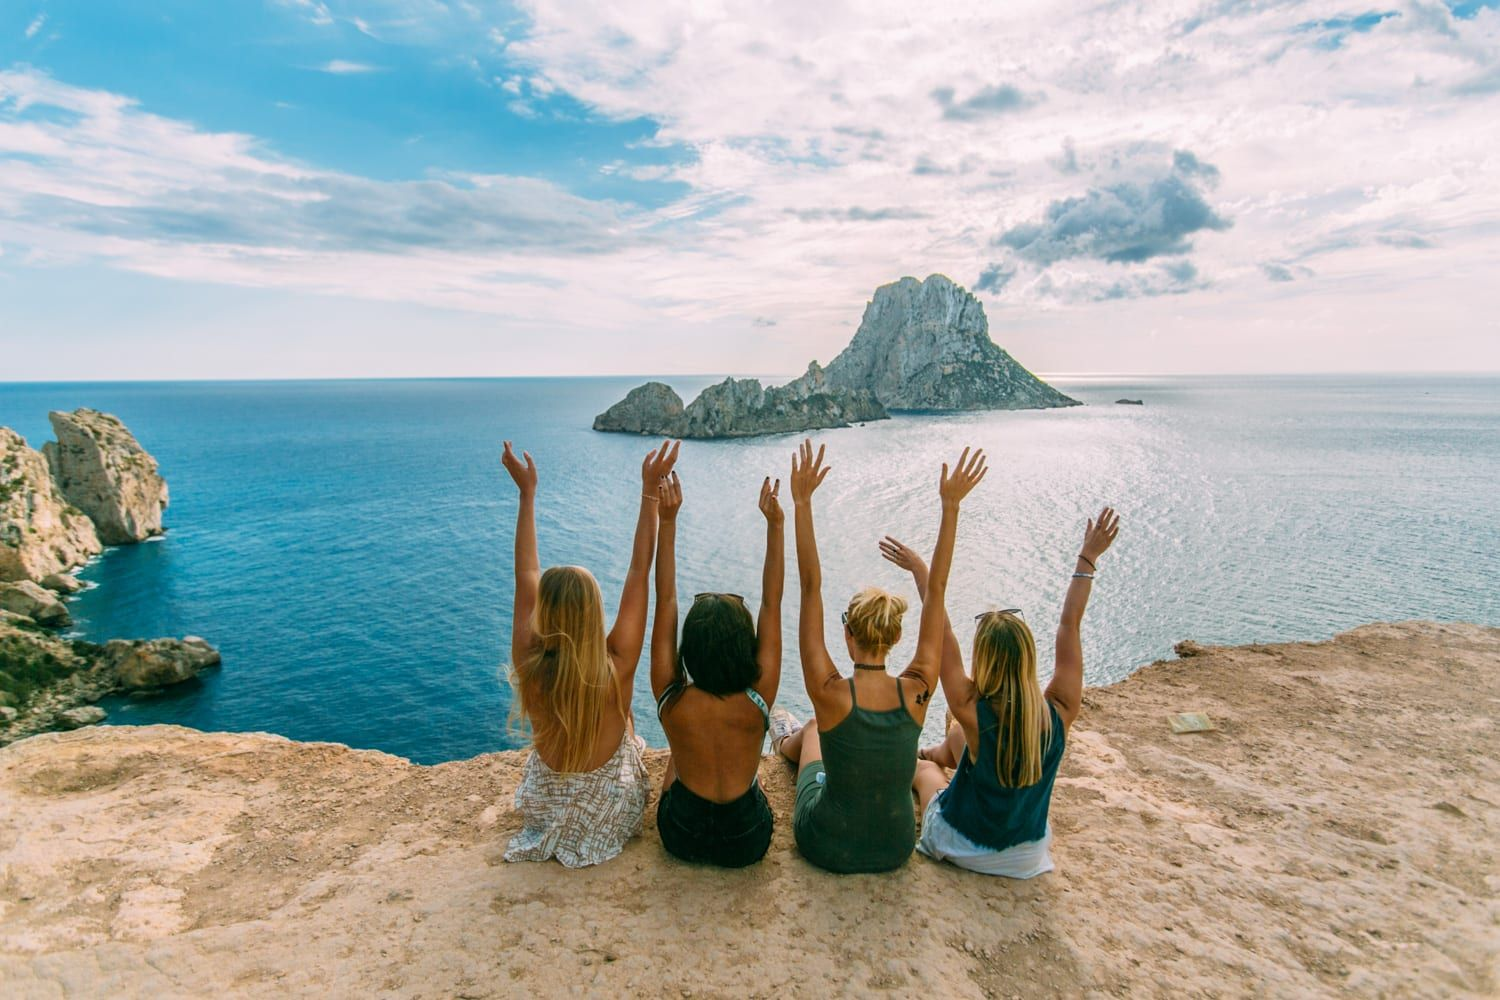 The Wellness Traveller S Summer Guide To Ibiza Ibiza Wellness Travel Travel